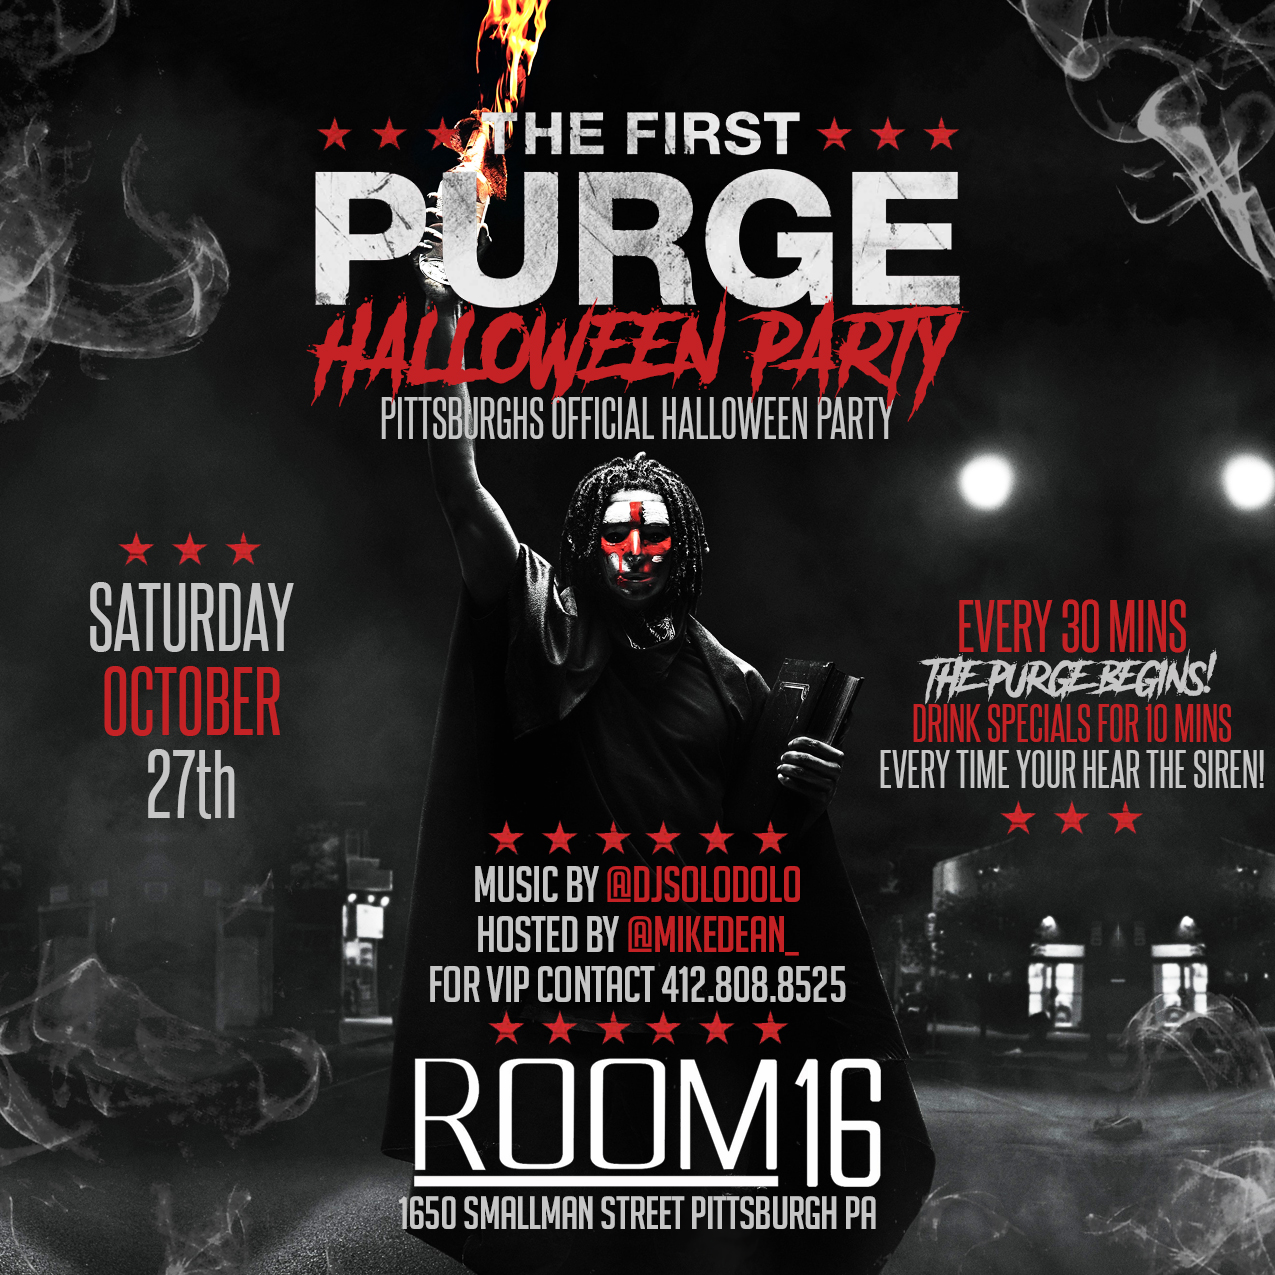 tickets for purge halloween party at room 16 in pittsburgh from showclix